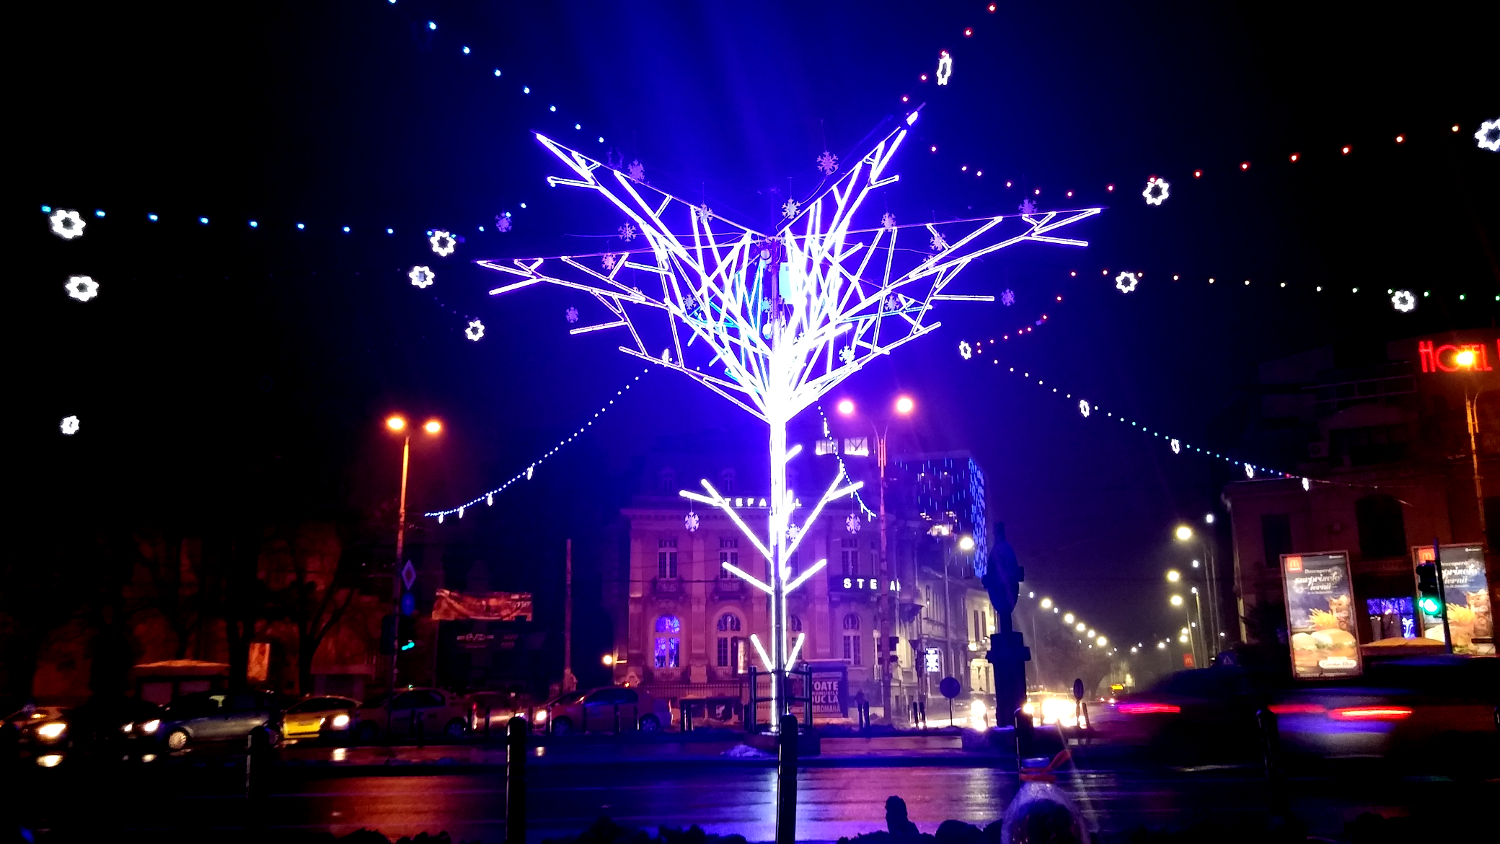 Christmas lights in Bucharest - Piata Romana